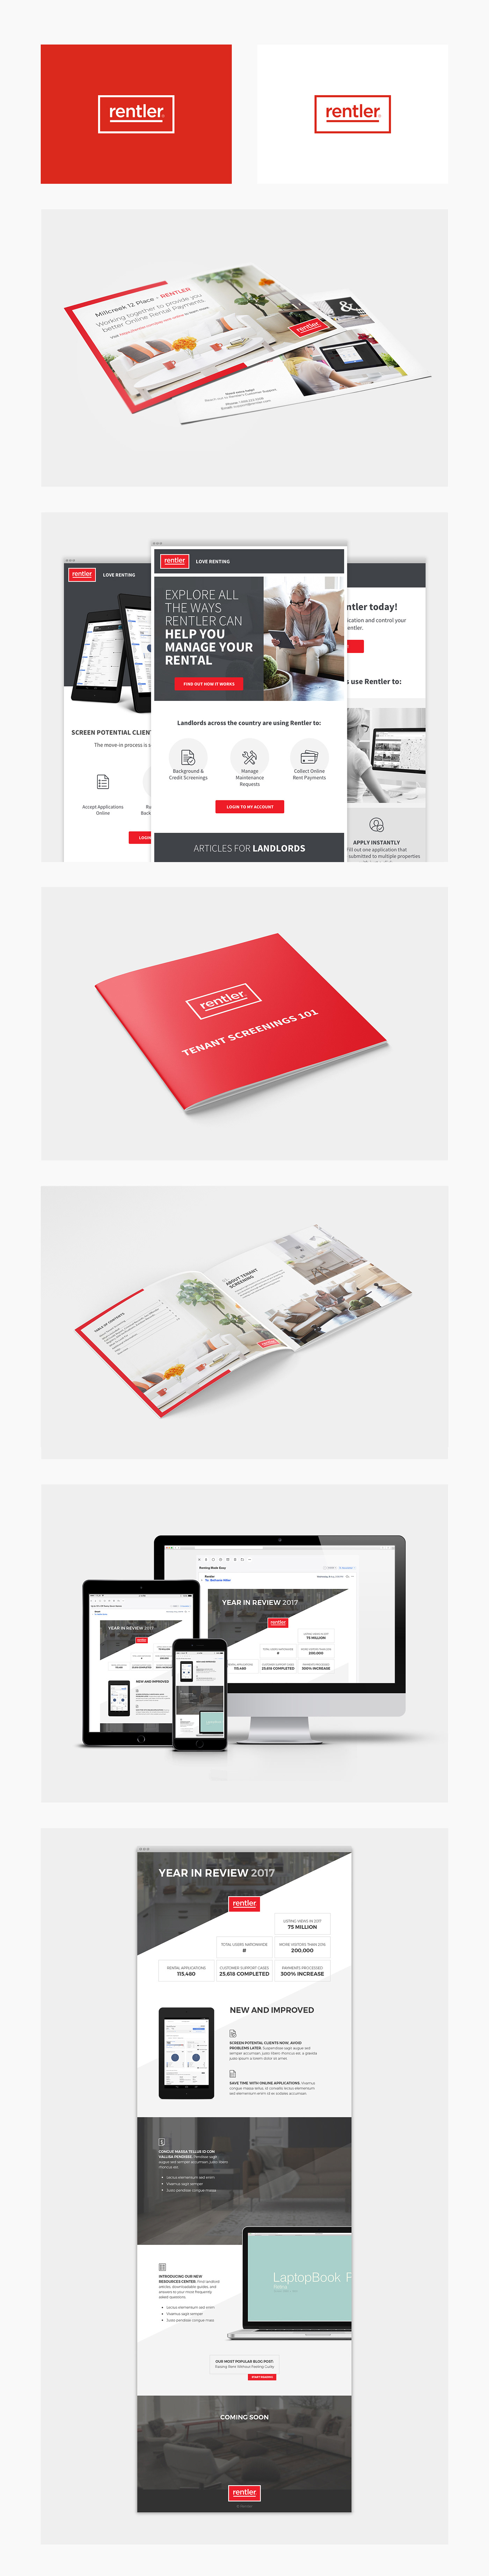 Email campaign Email Design flyers marketing   Booklet print design